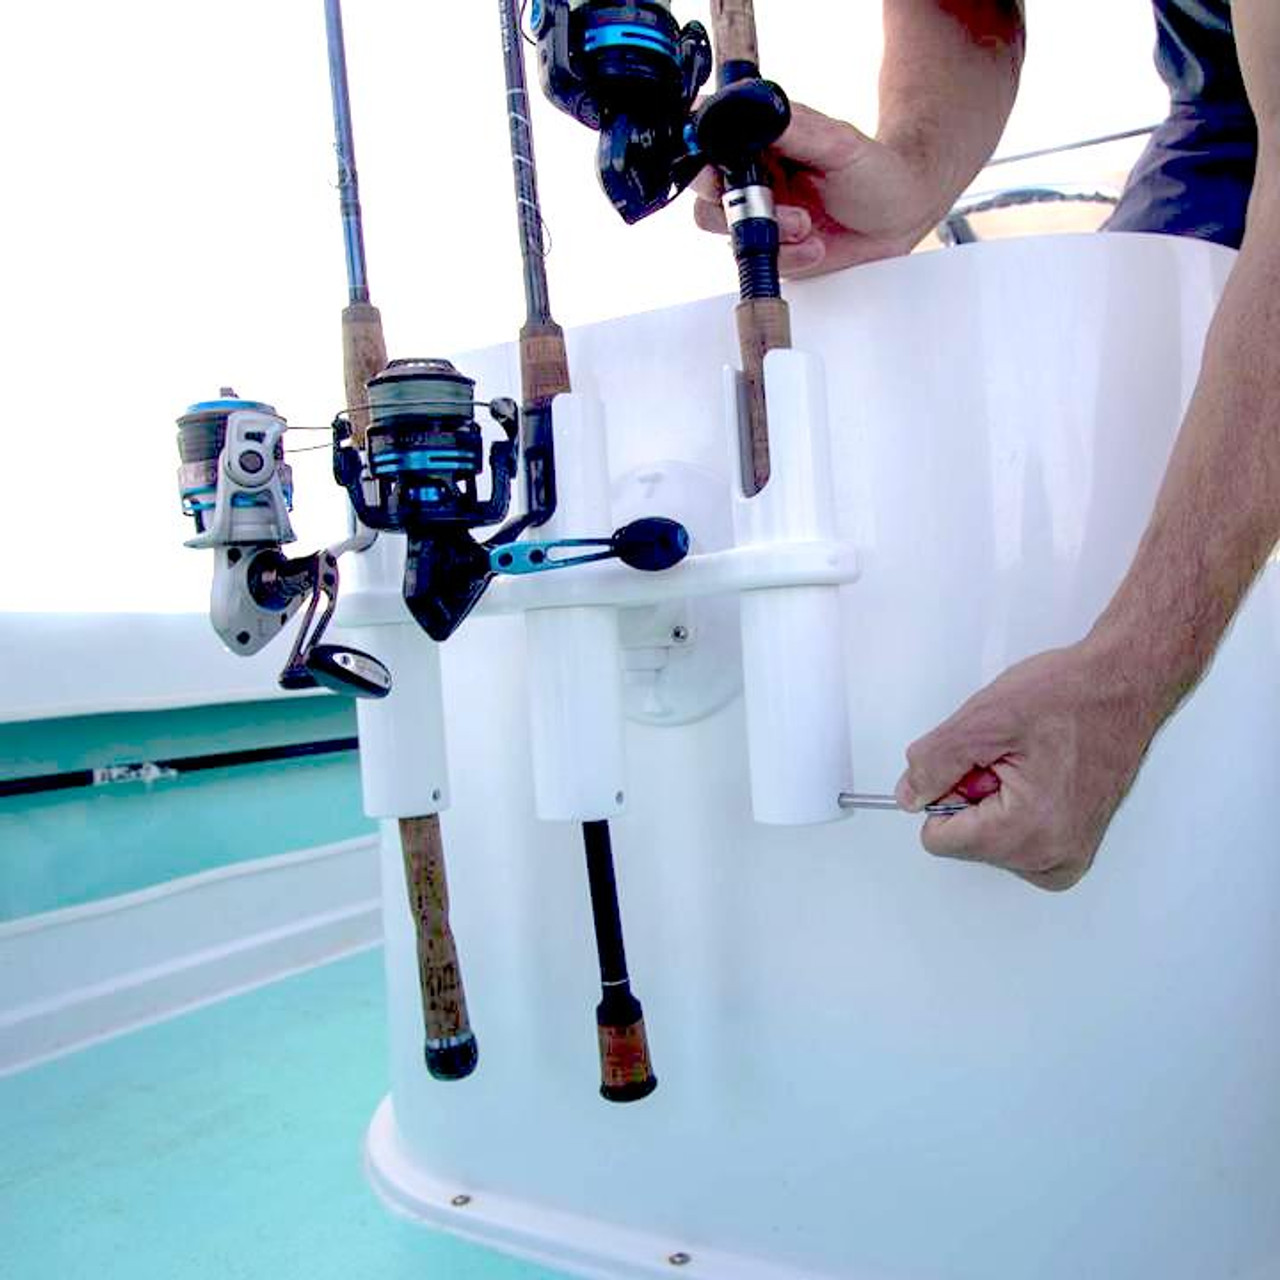 suction mount 3 rod holder for boat